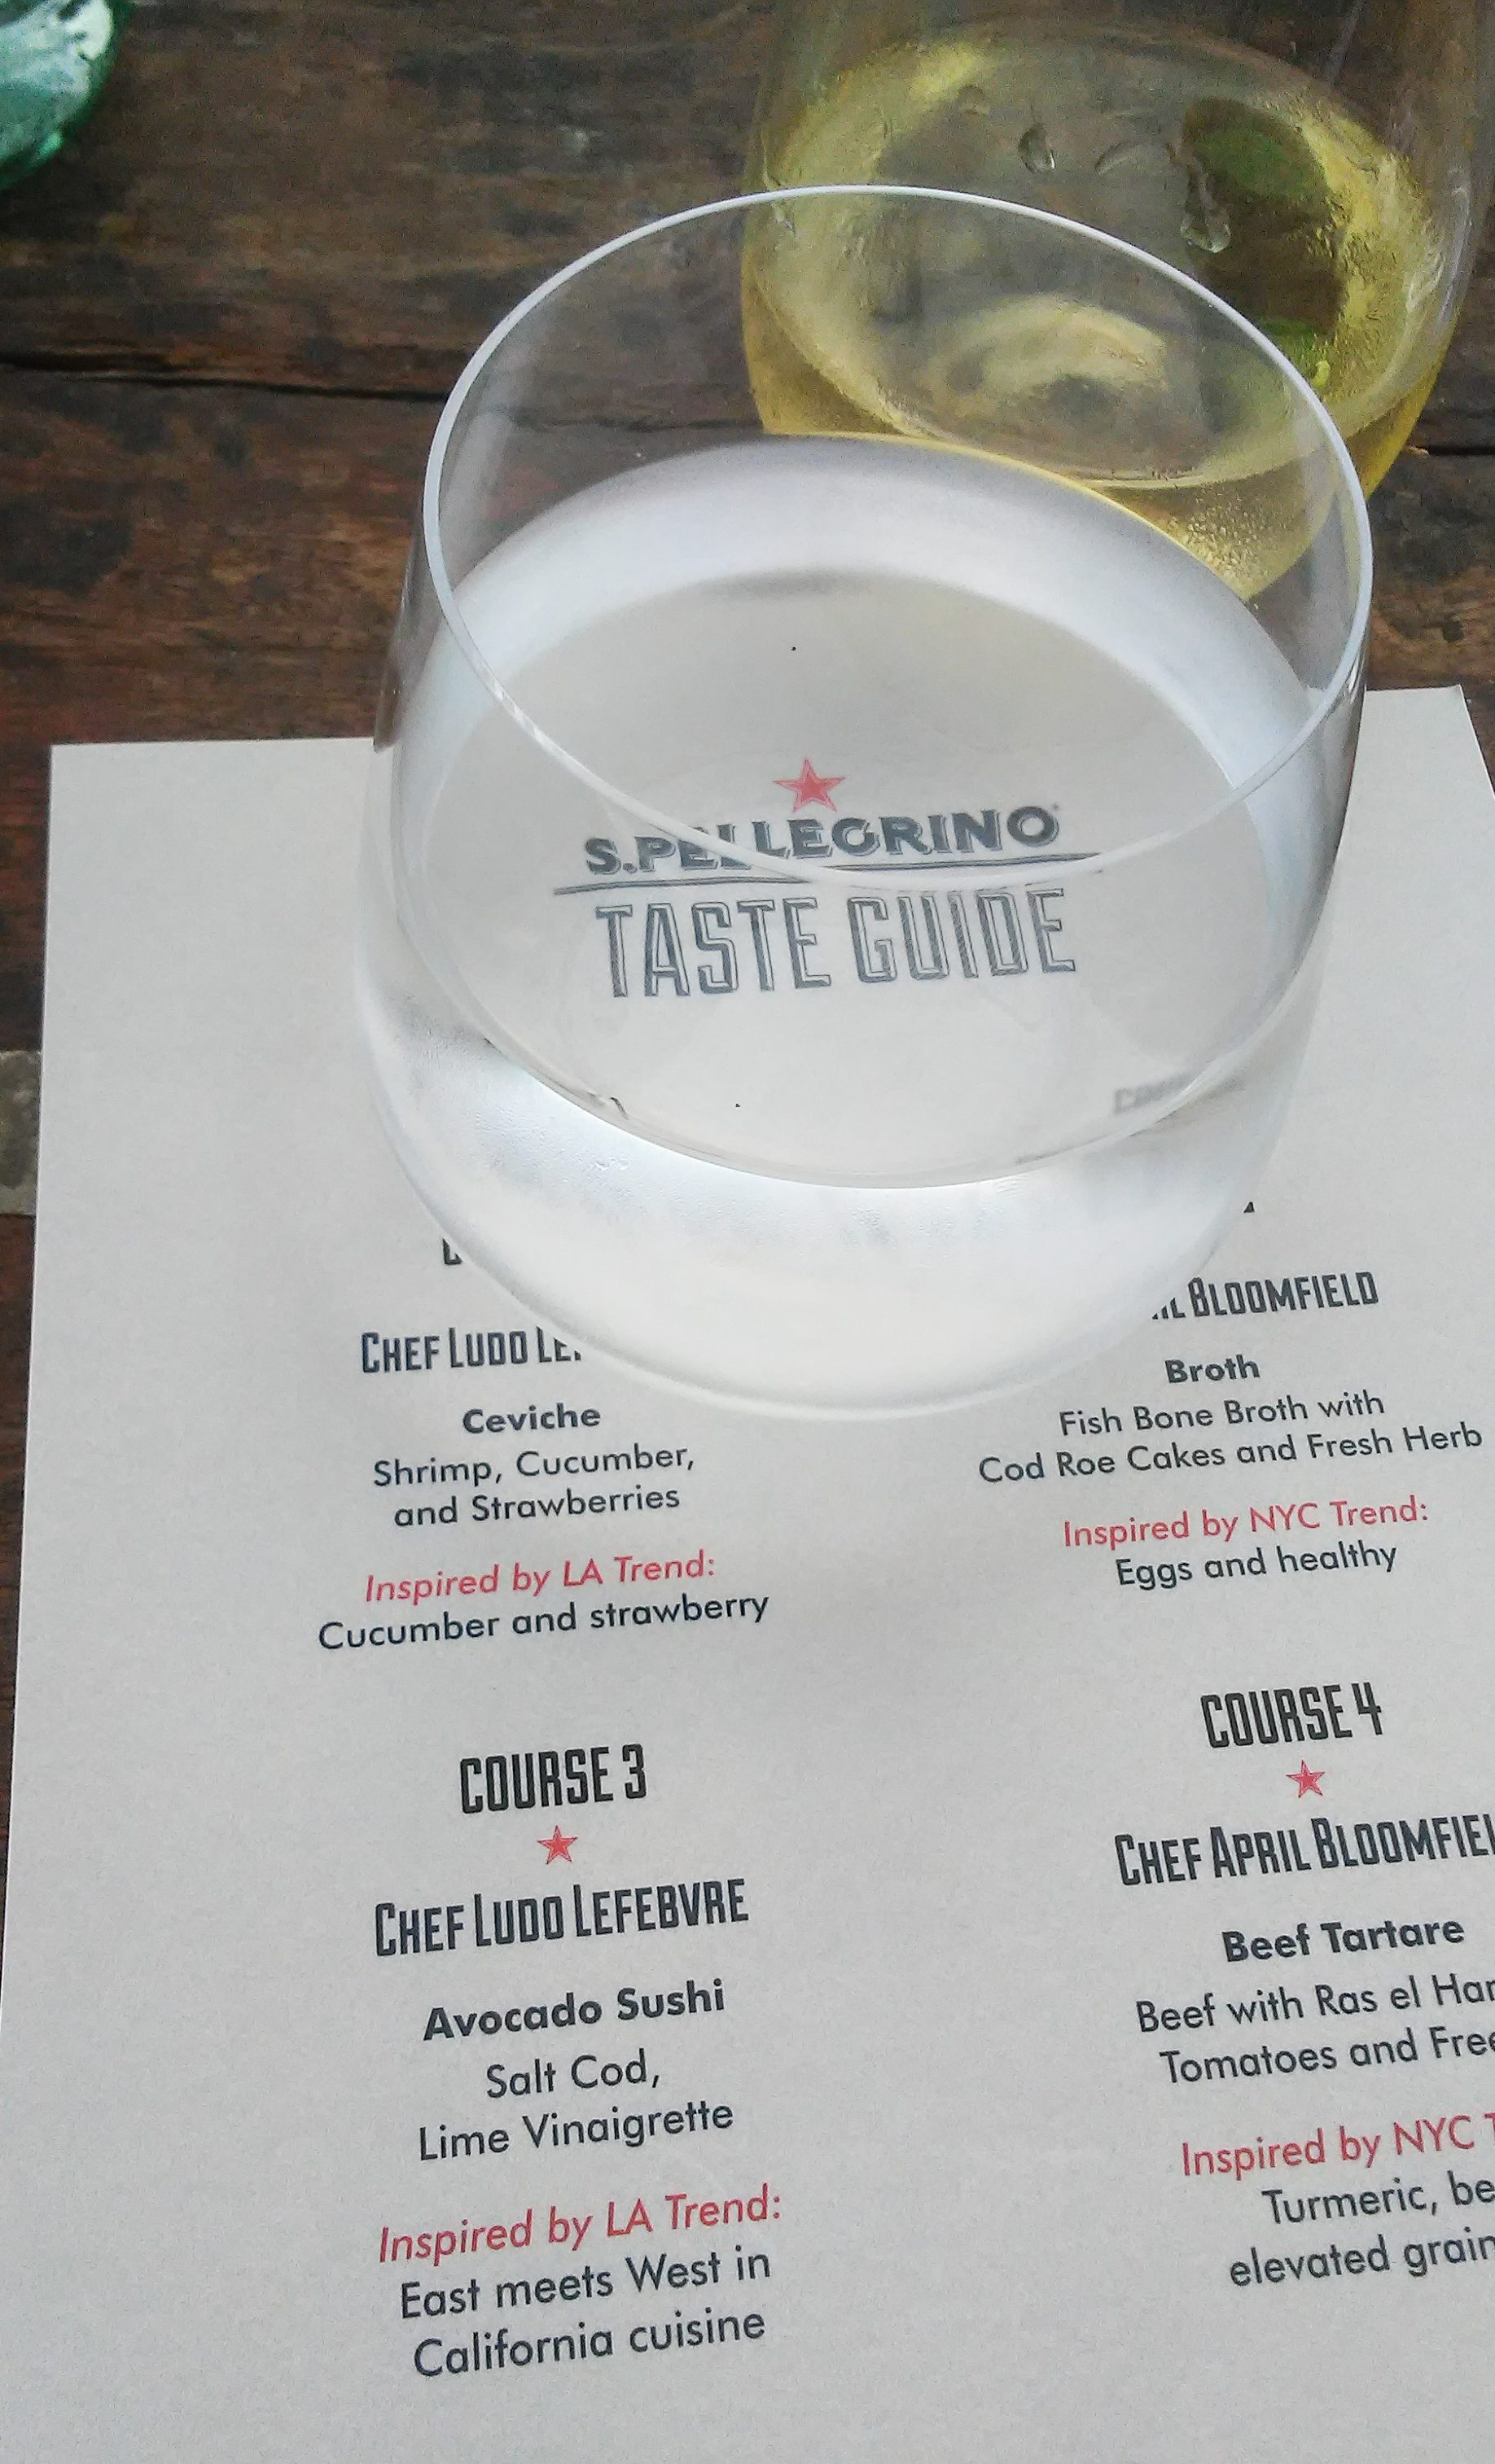 San Pellegrino Taste Guide event in NYC with Chef April Bloomfield